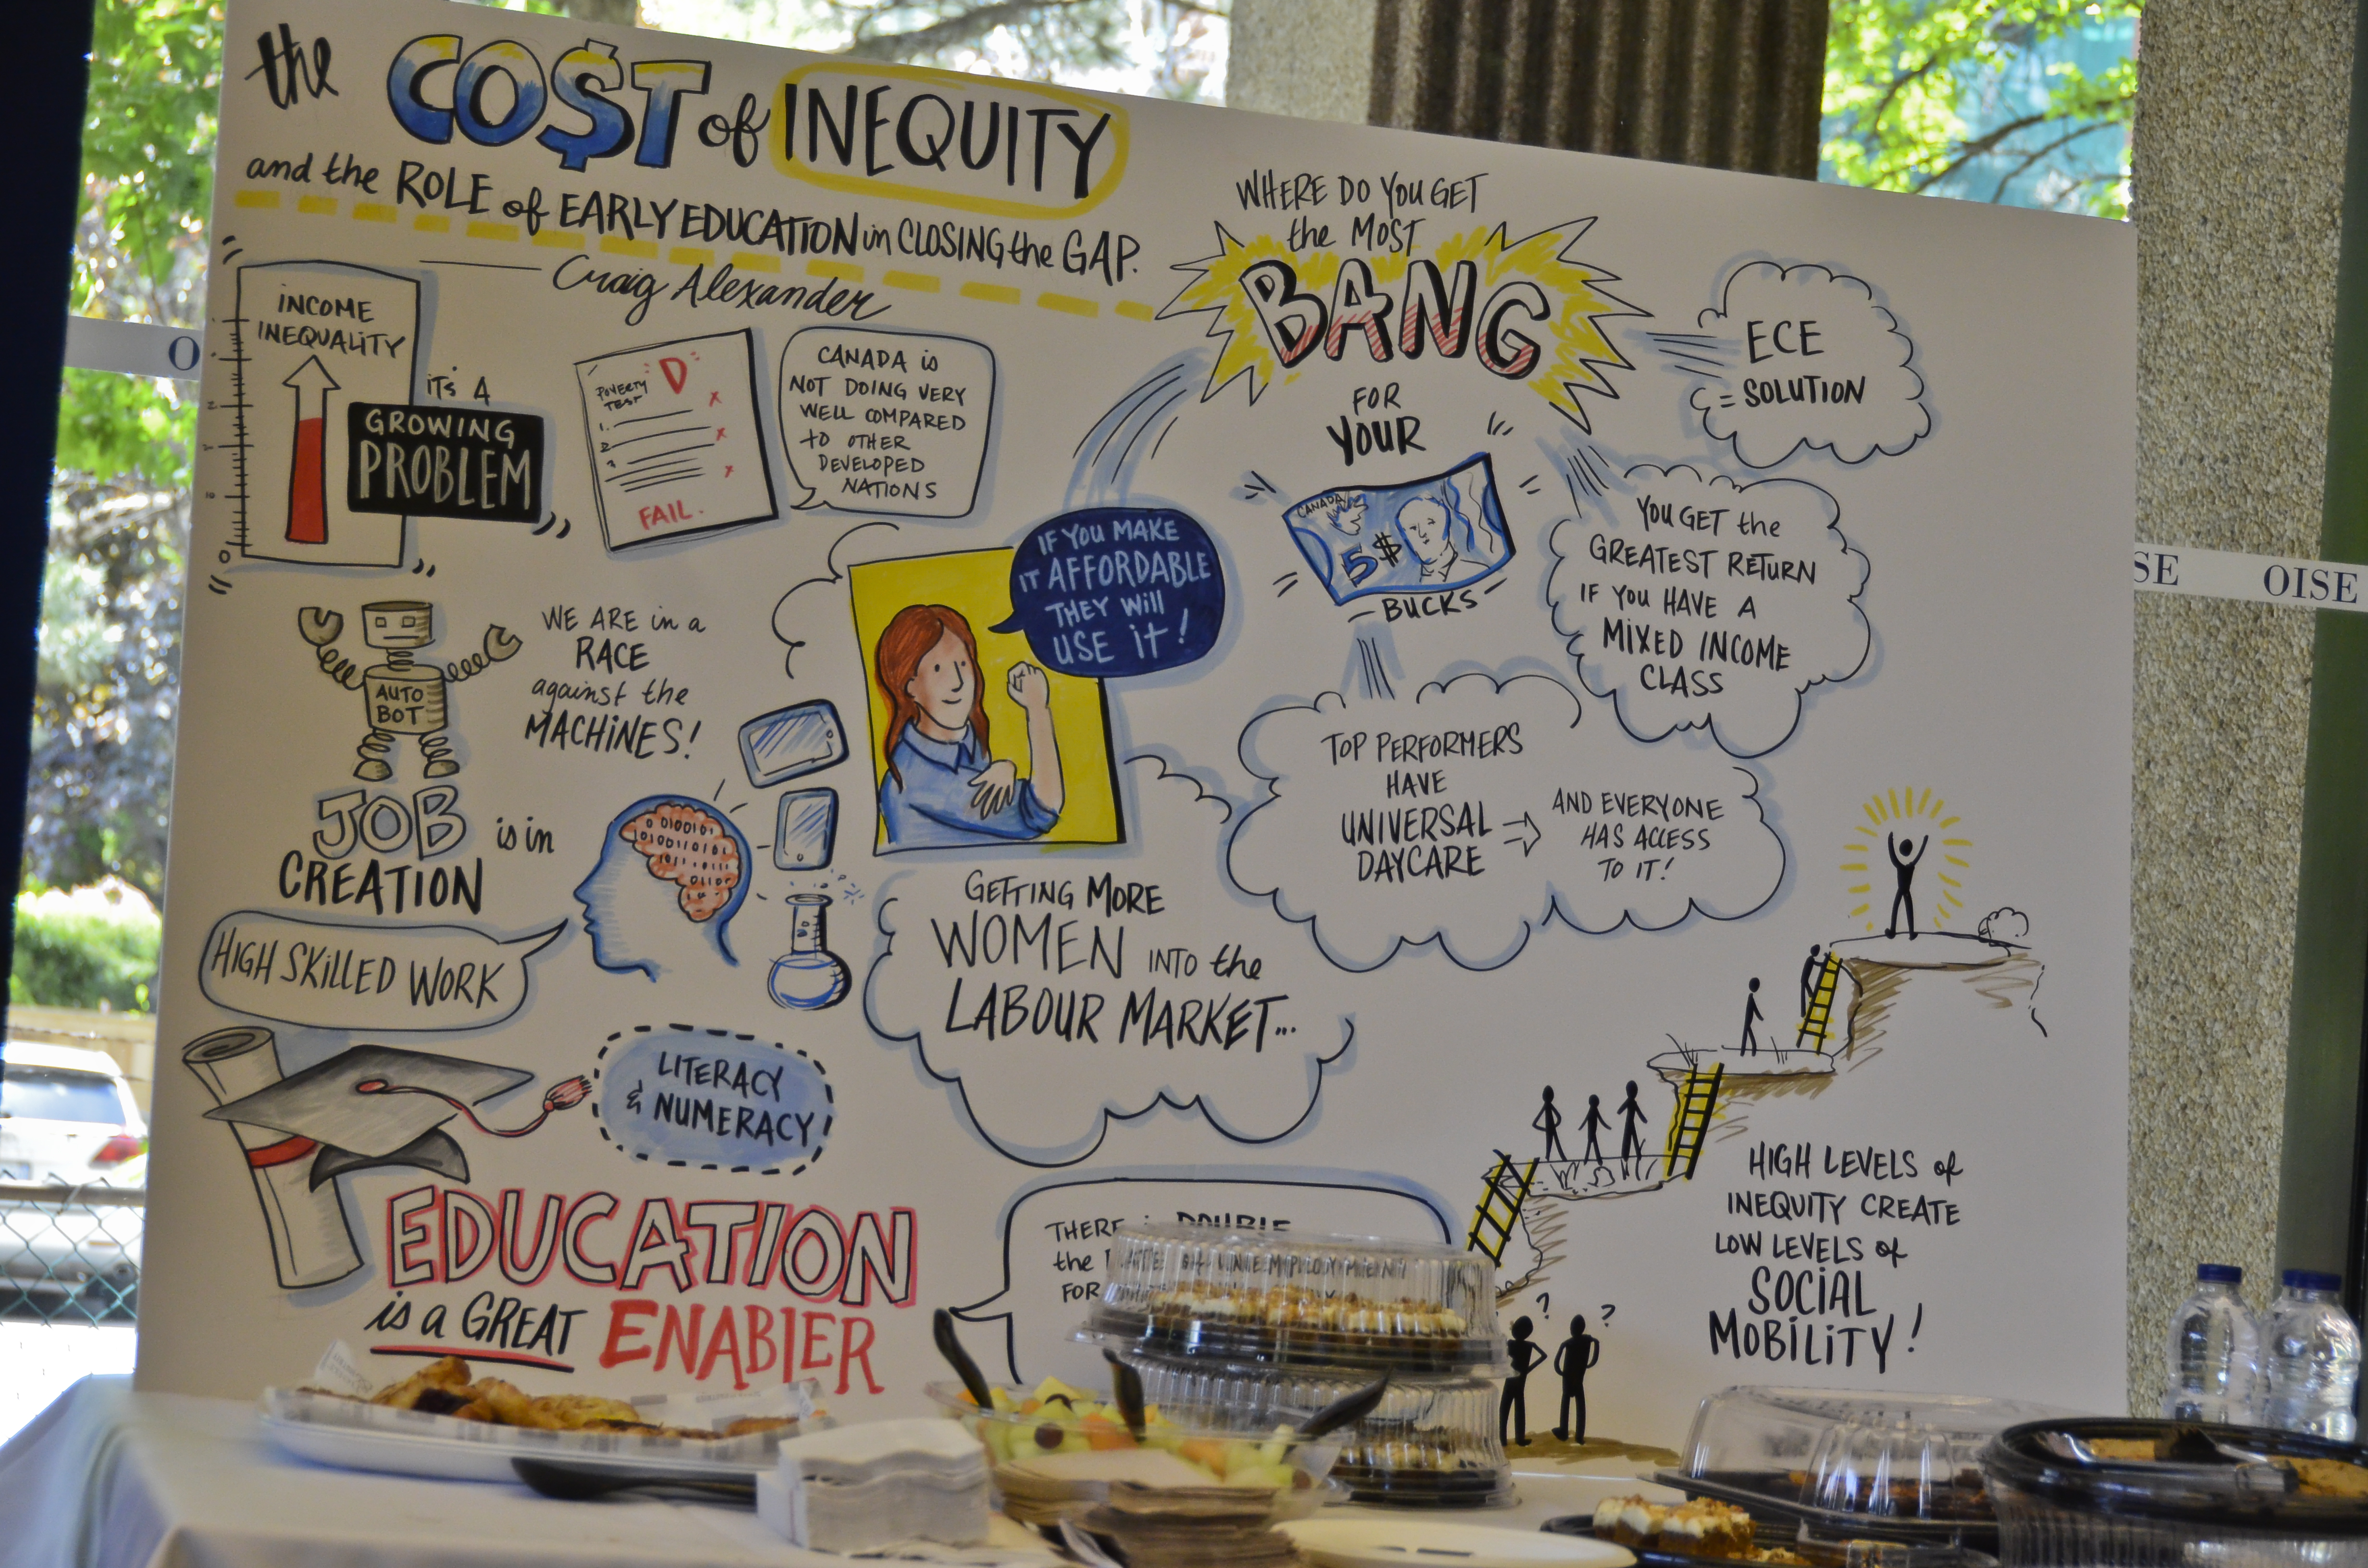 The Cost of Inequity art work